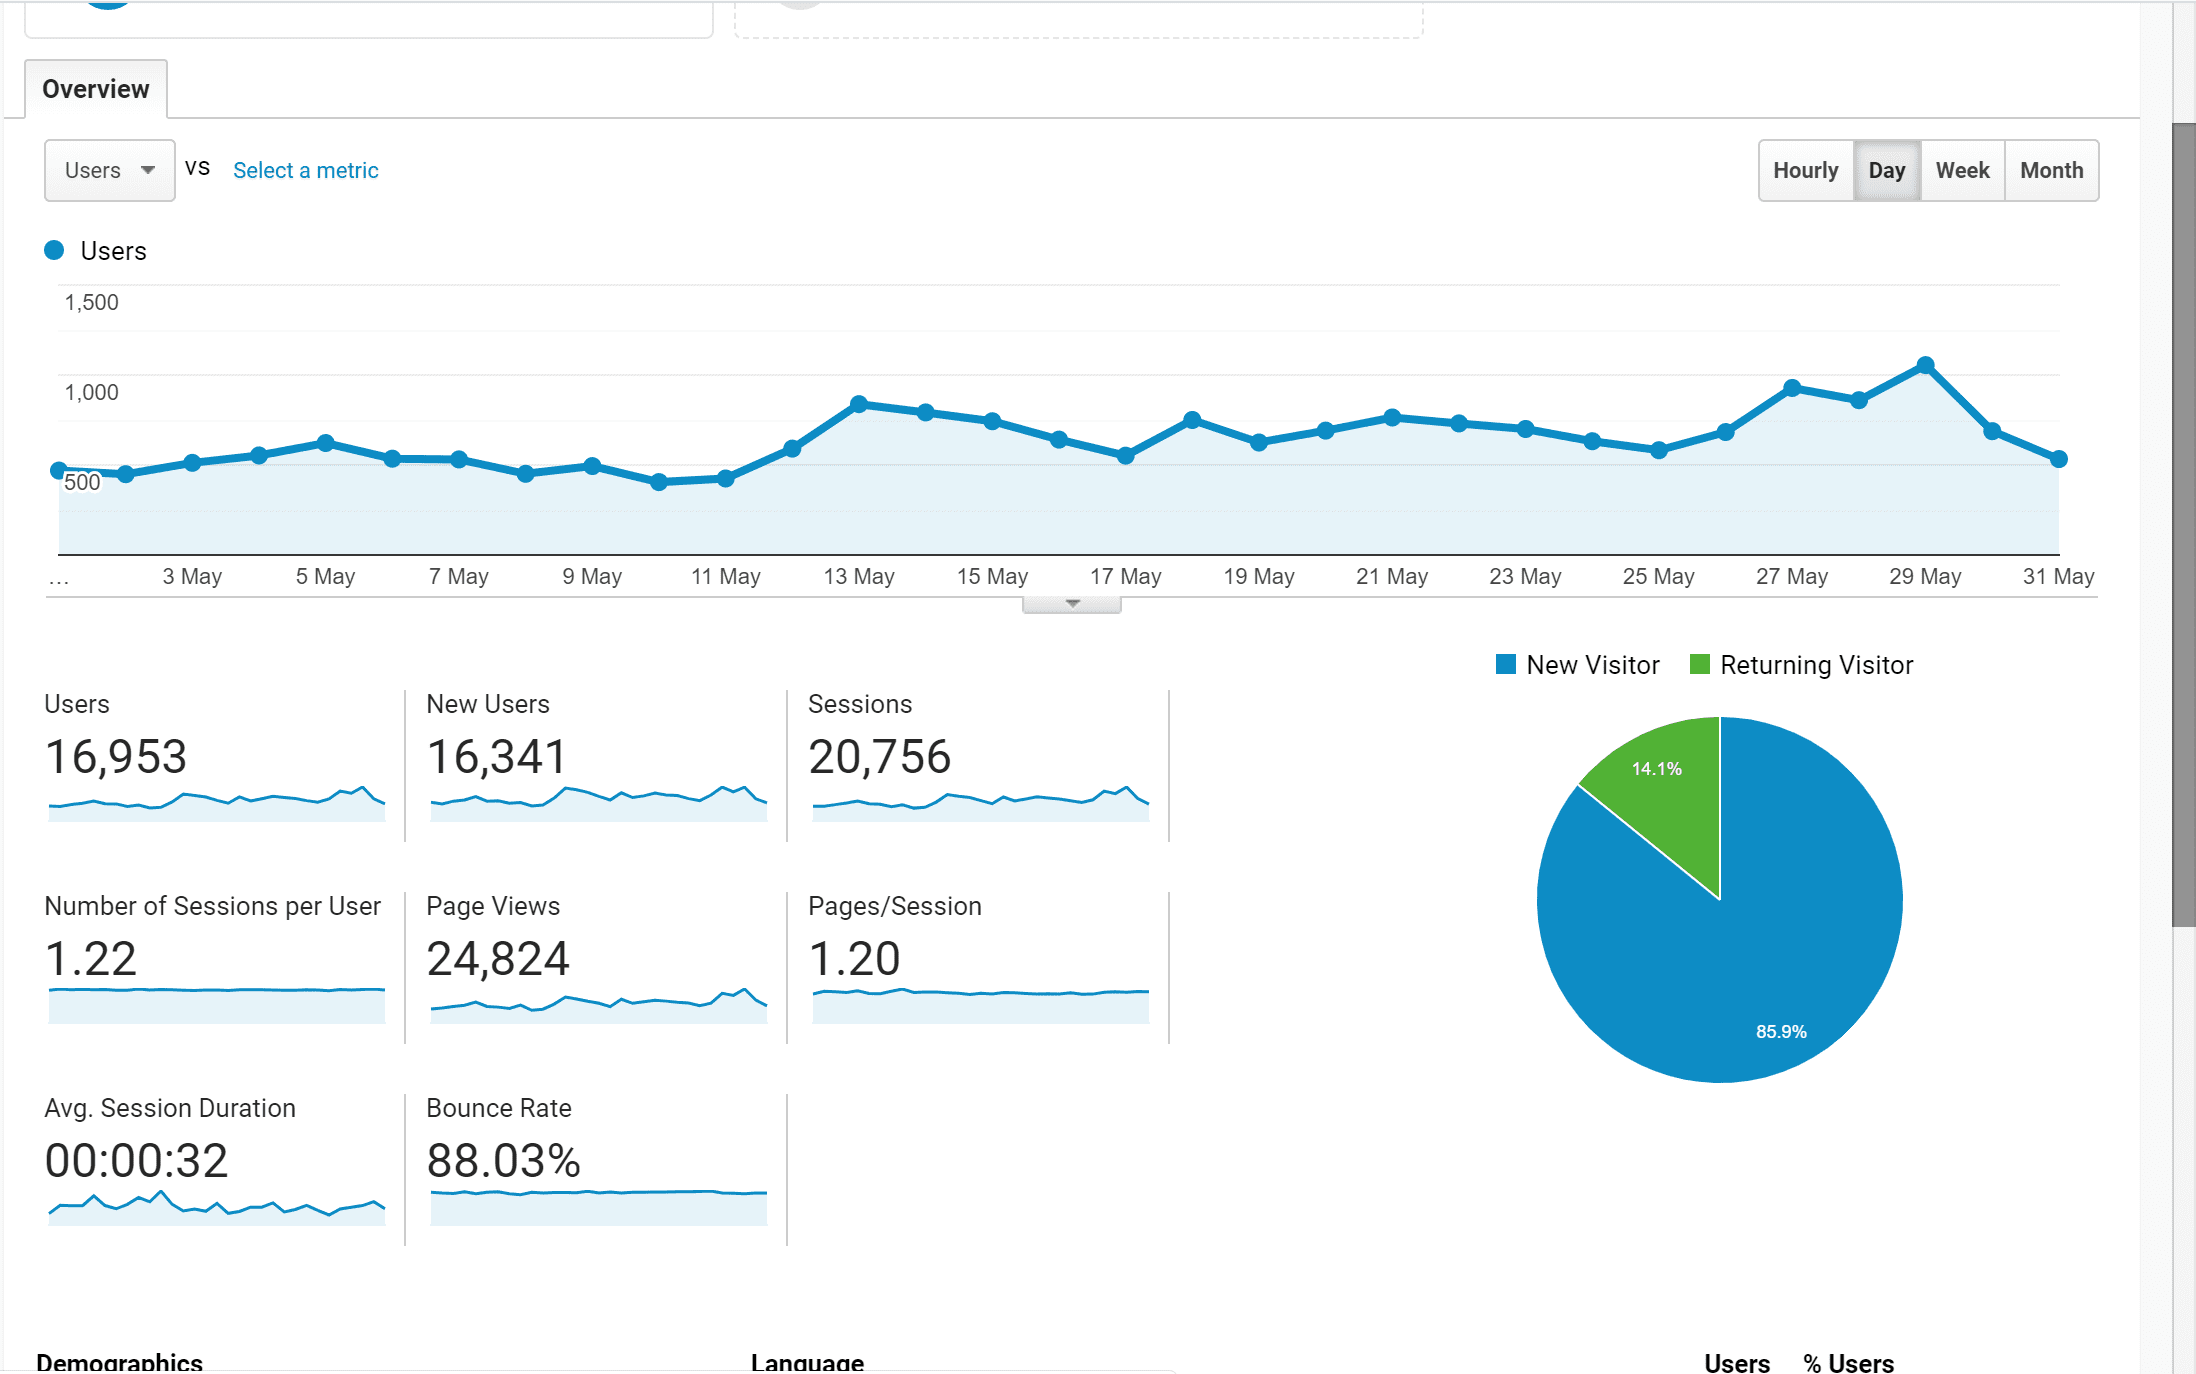 May Traffic Overview